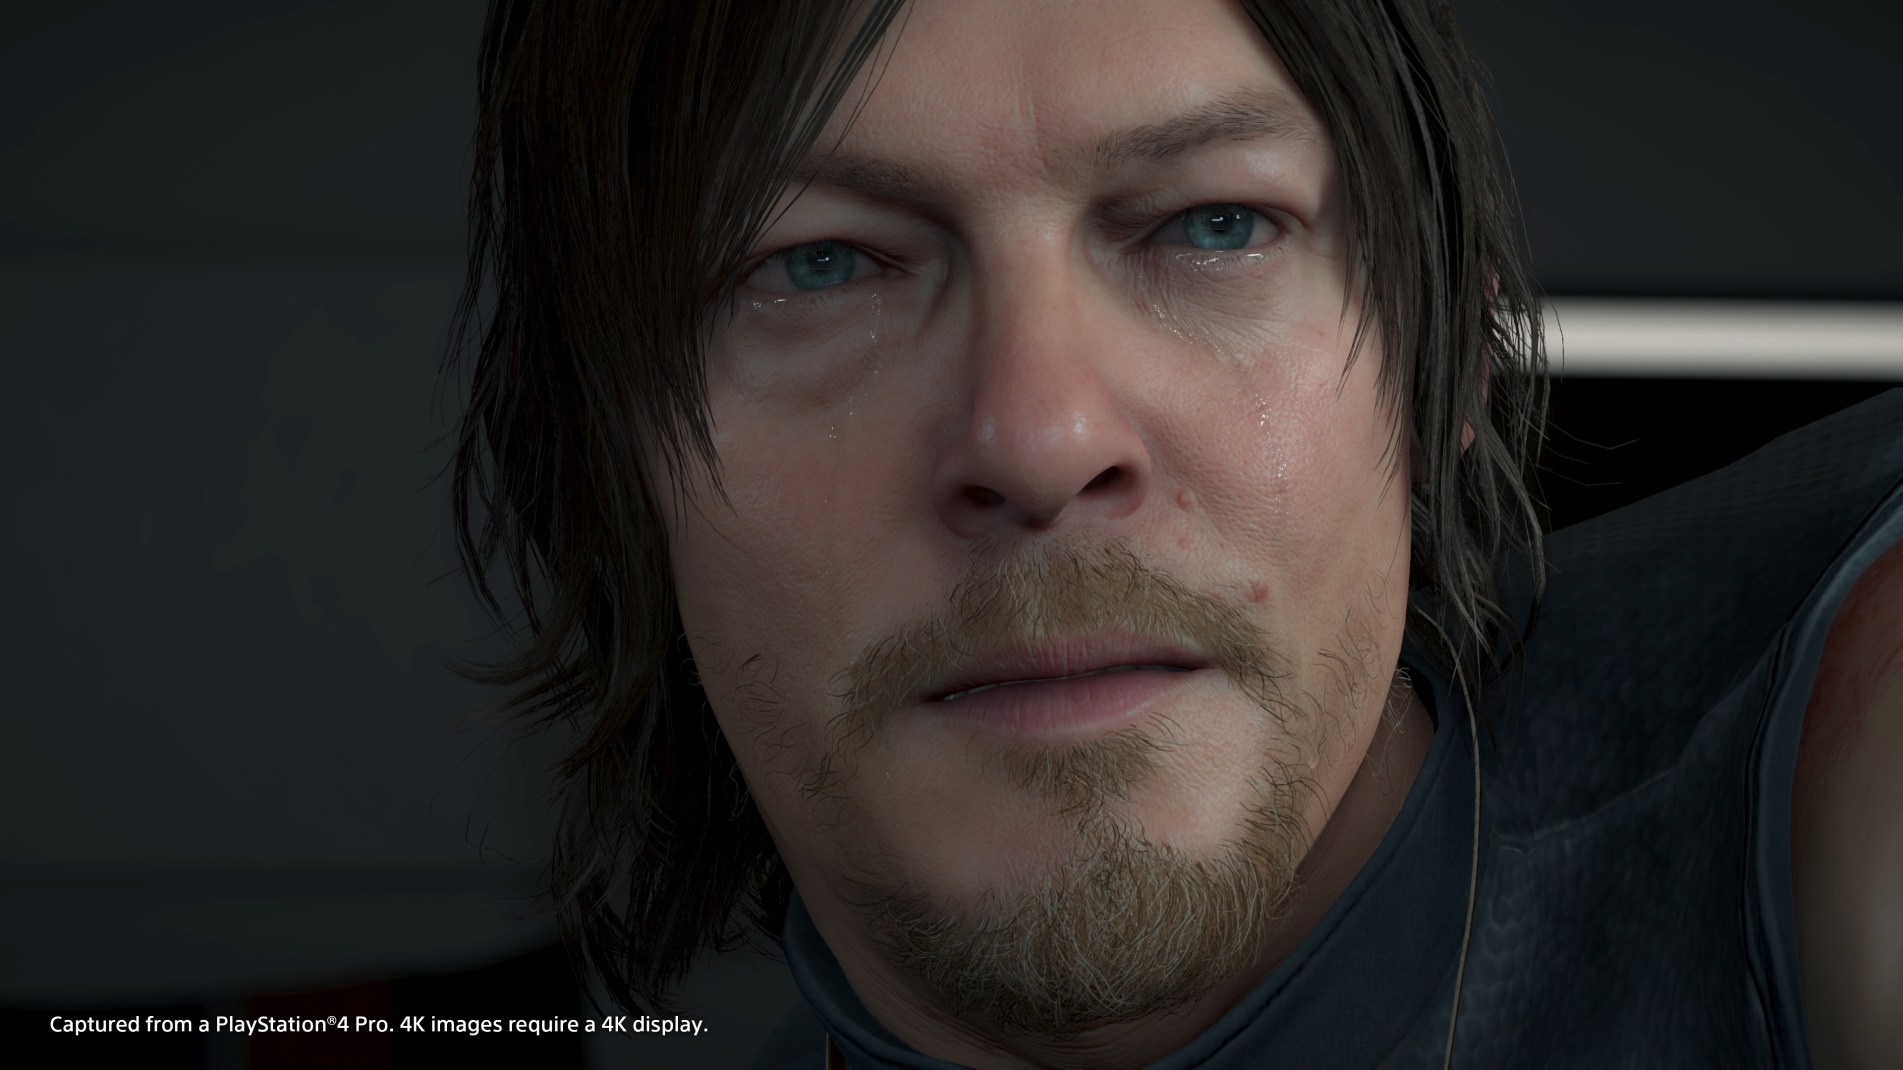 A close up Sam (Norman Redus) shows the visual quality of the game.